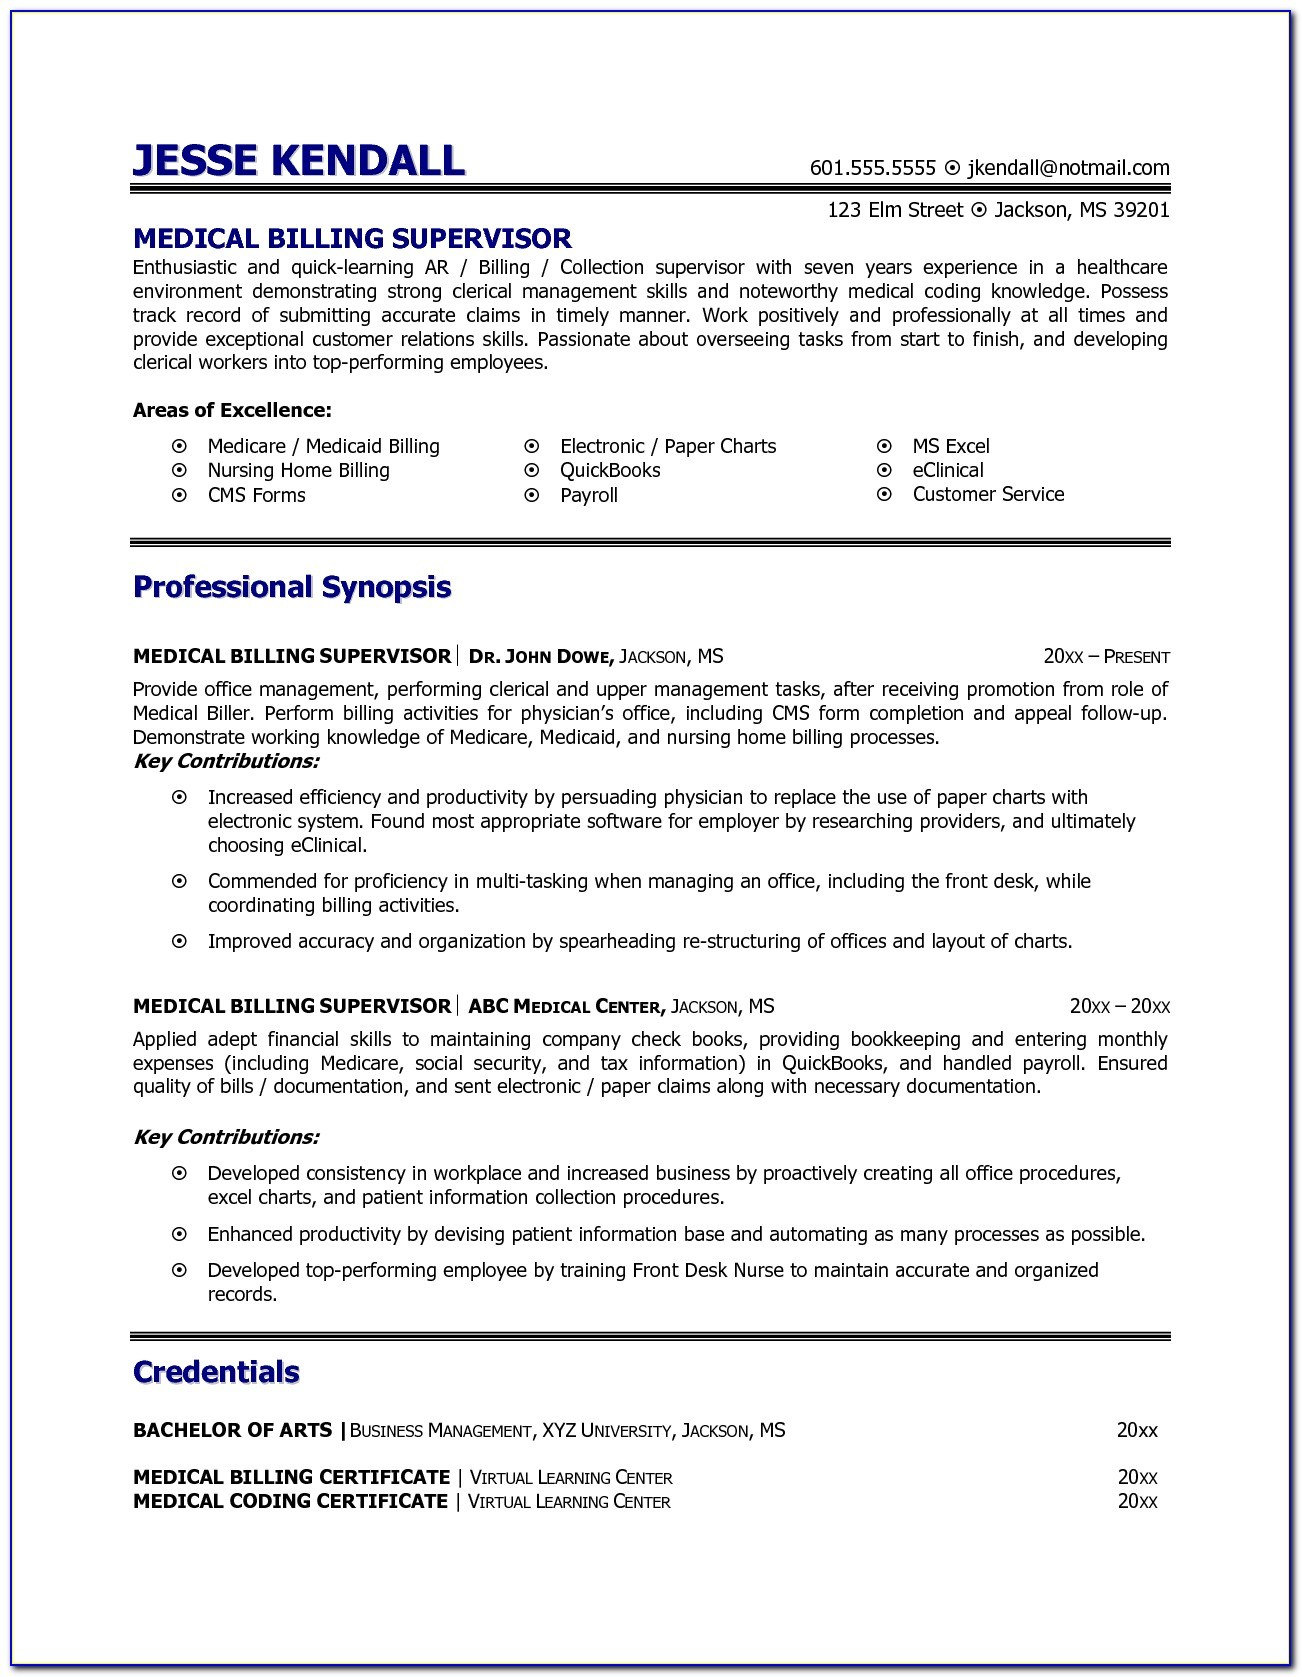 resume examples for medical billing and coding vincegray2014 skills job definition Resume Skills For Medical Billing And Coding Resume